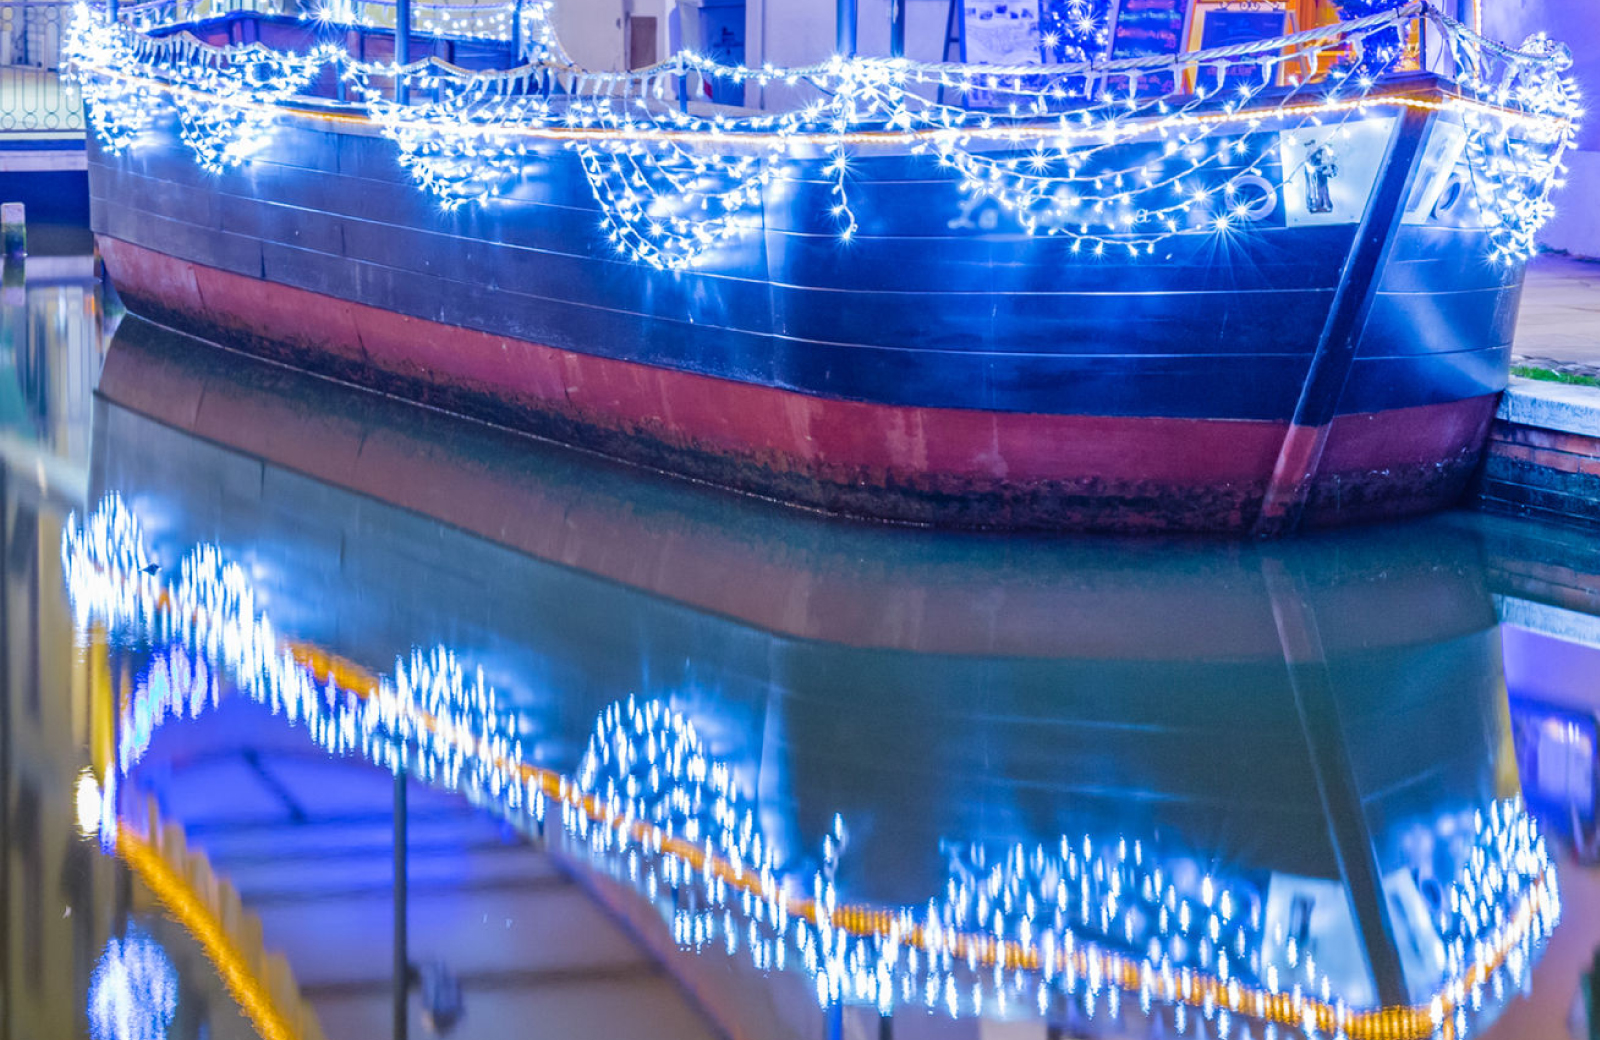 Boat decked out in blue holiday lights - The Vue